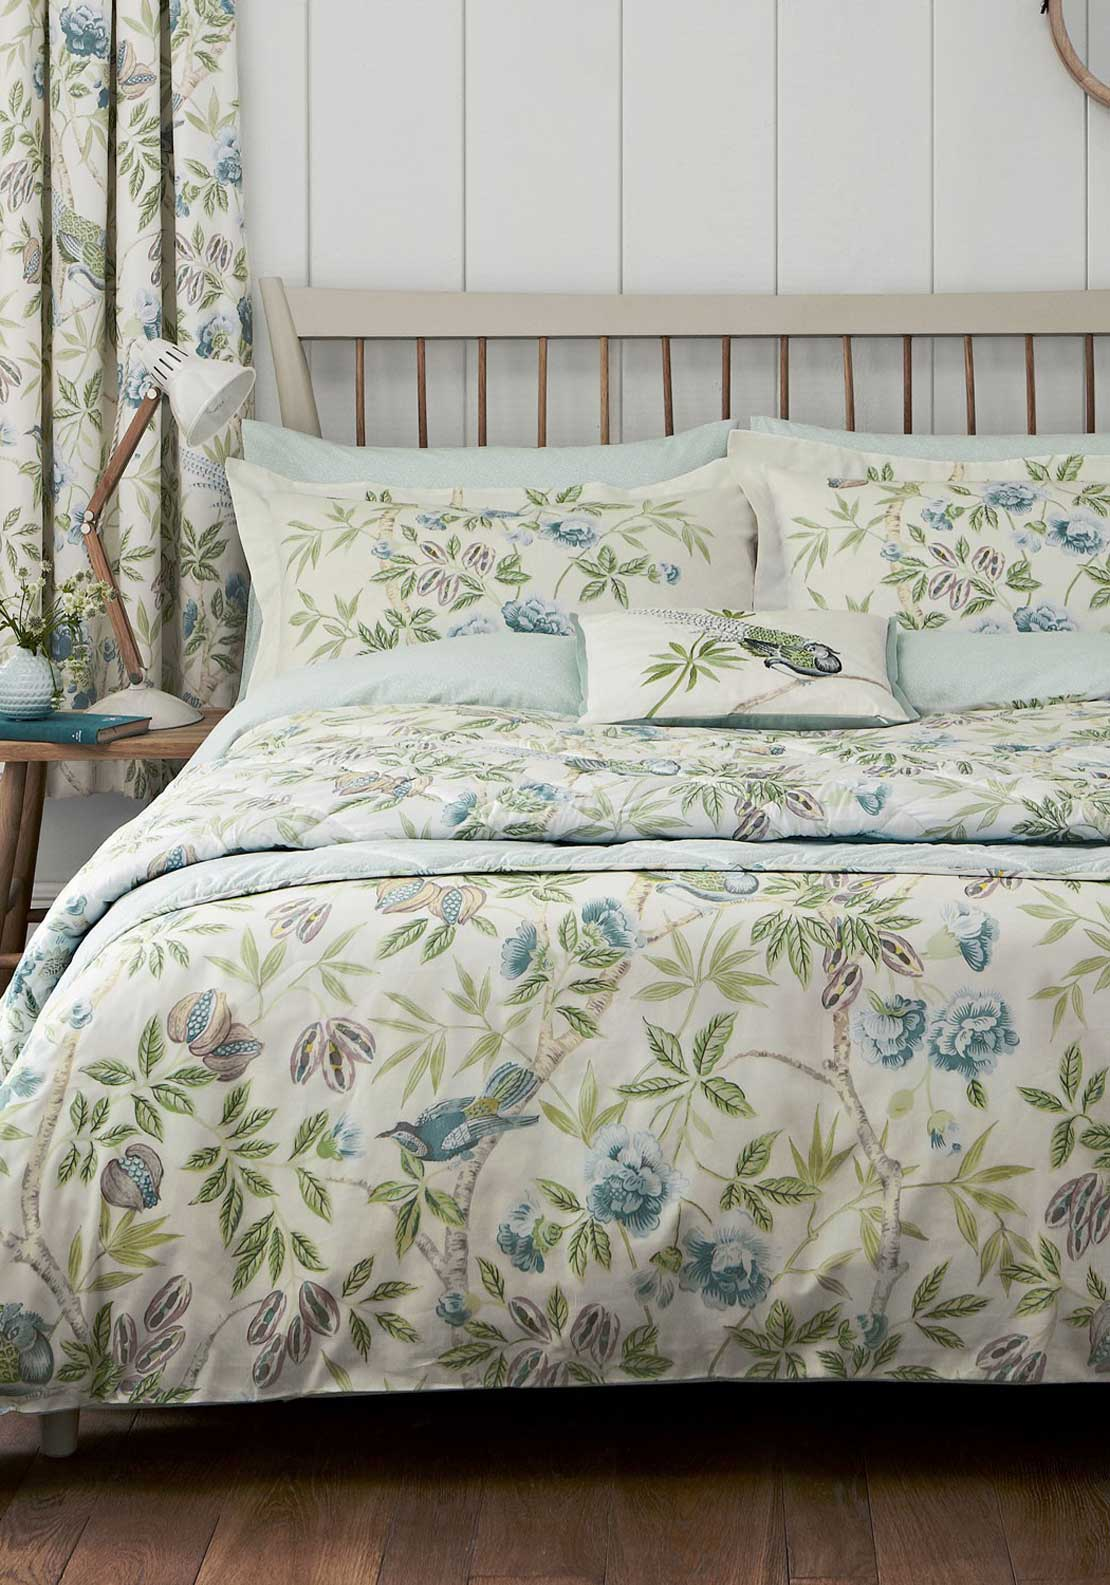 Sanderson Options Abbeville Duck Egg Quilted Throw 265 x 260, Beige with Green and Blue